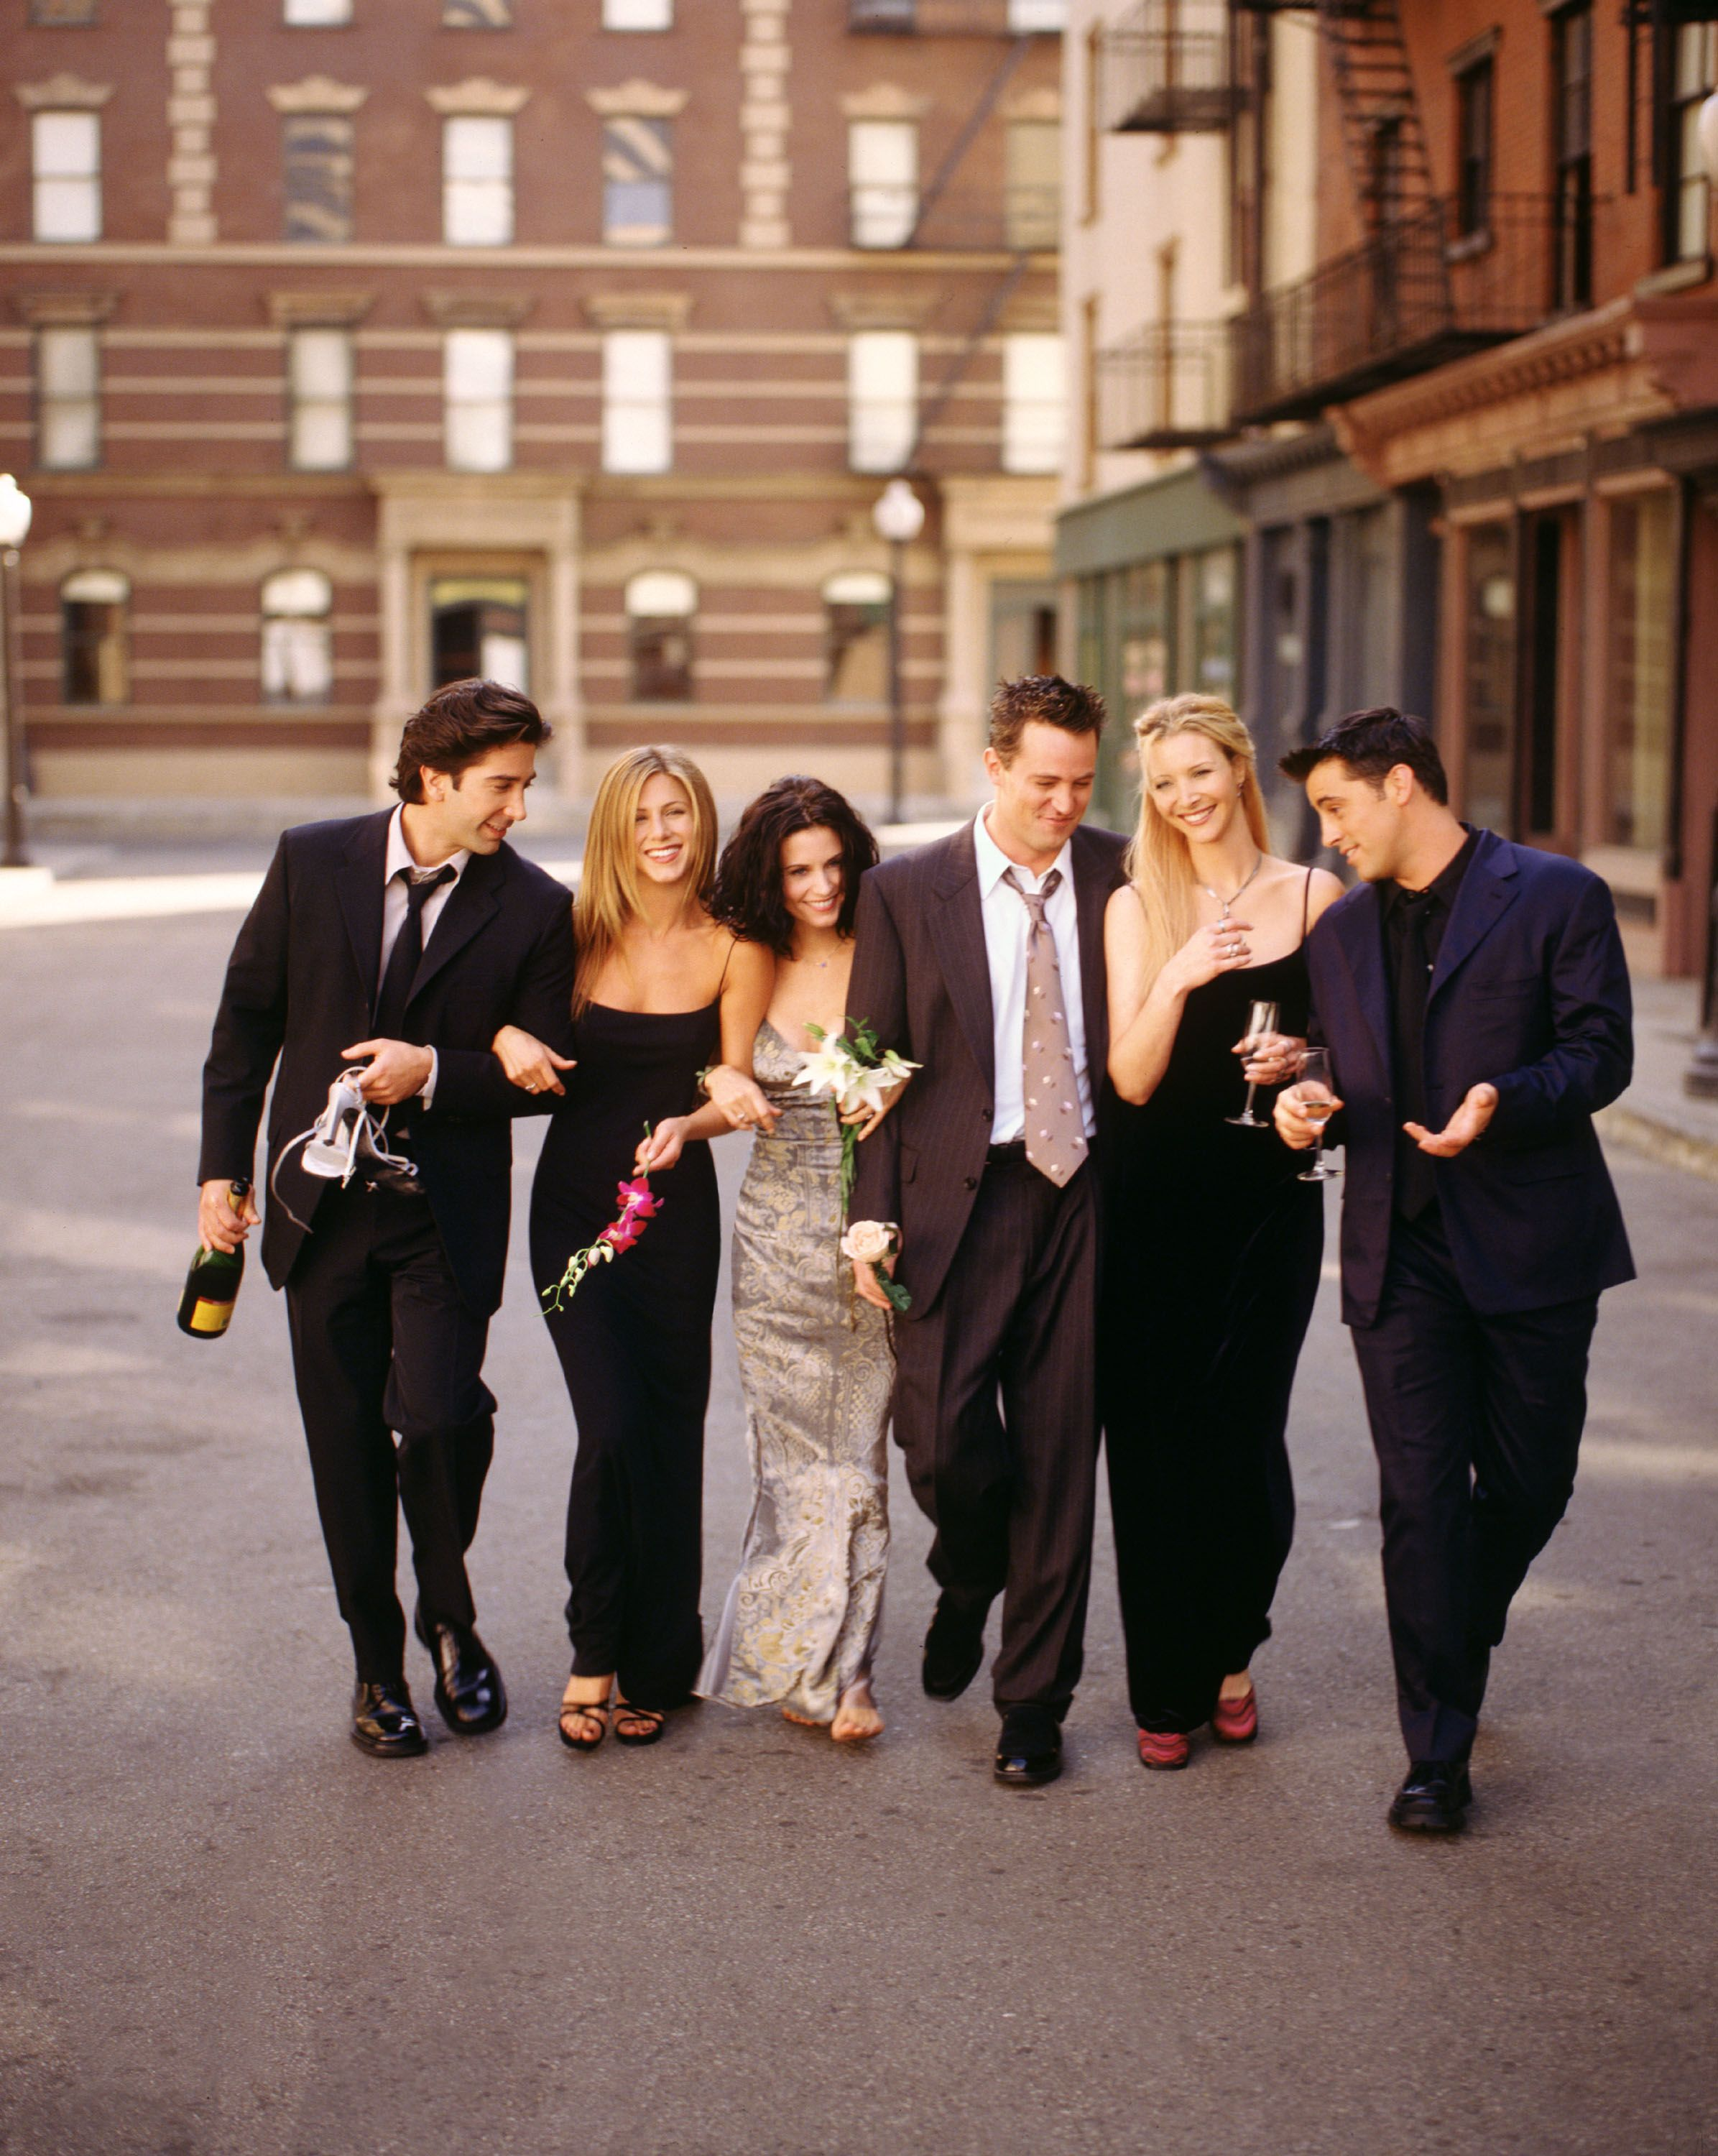 """Cast members of NBC's comedy series """"Friends"""" on March 07, 2001 